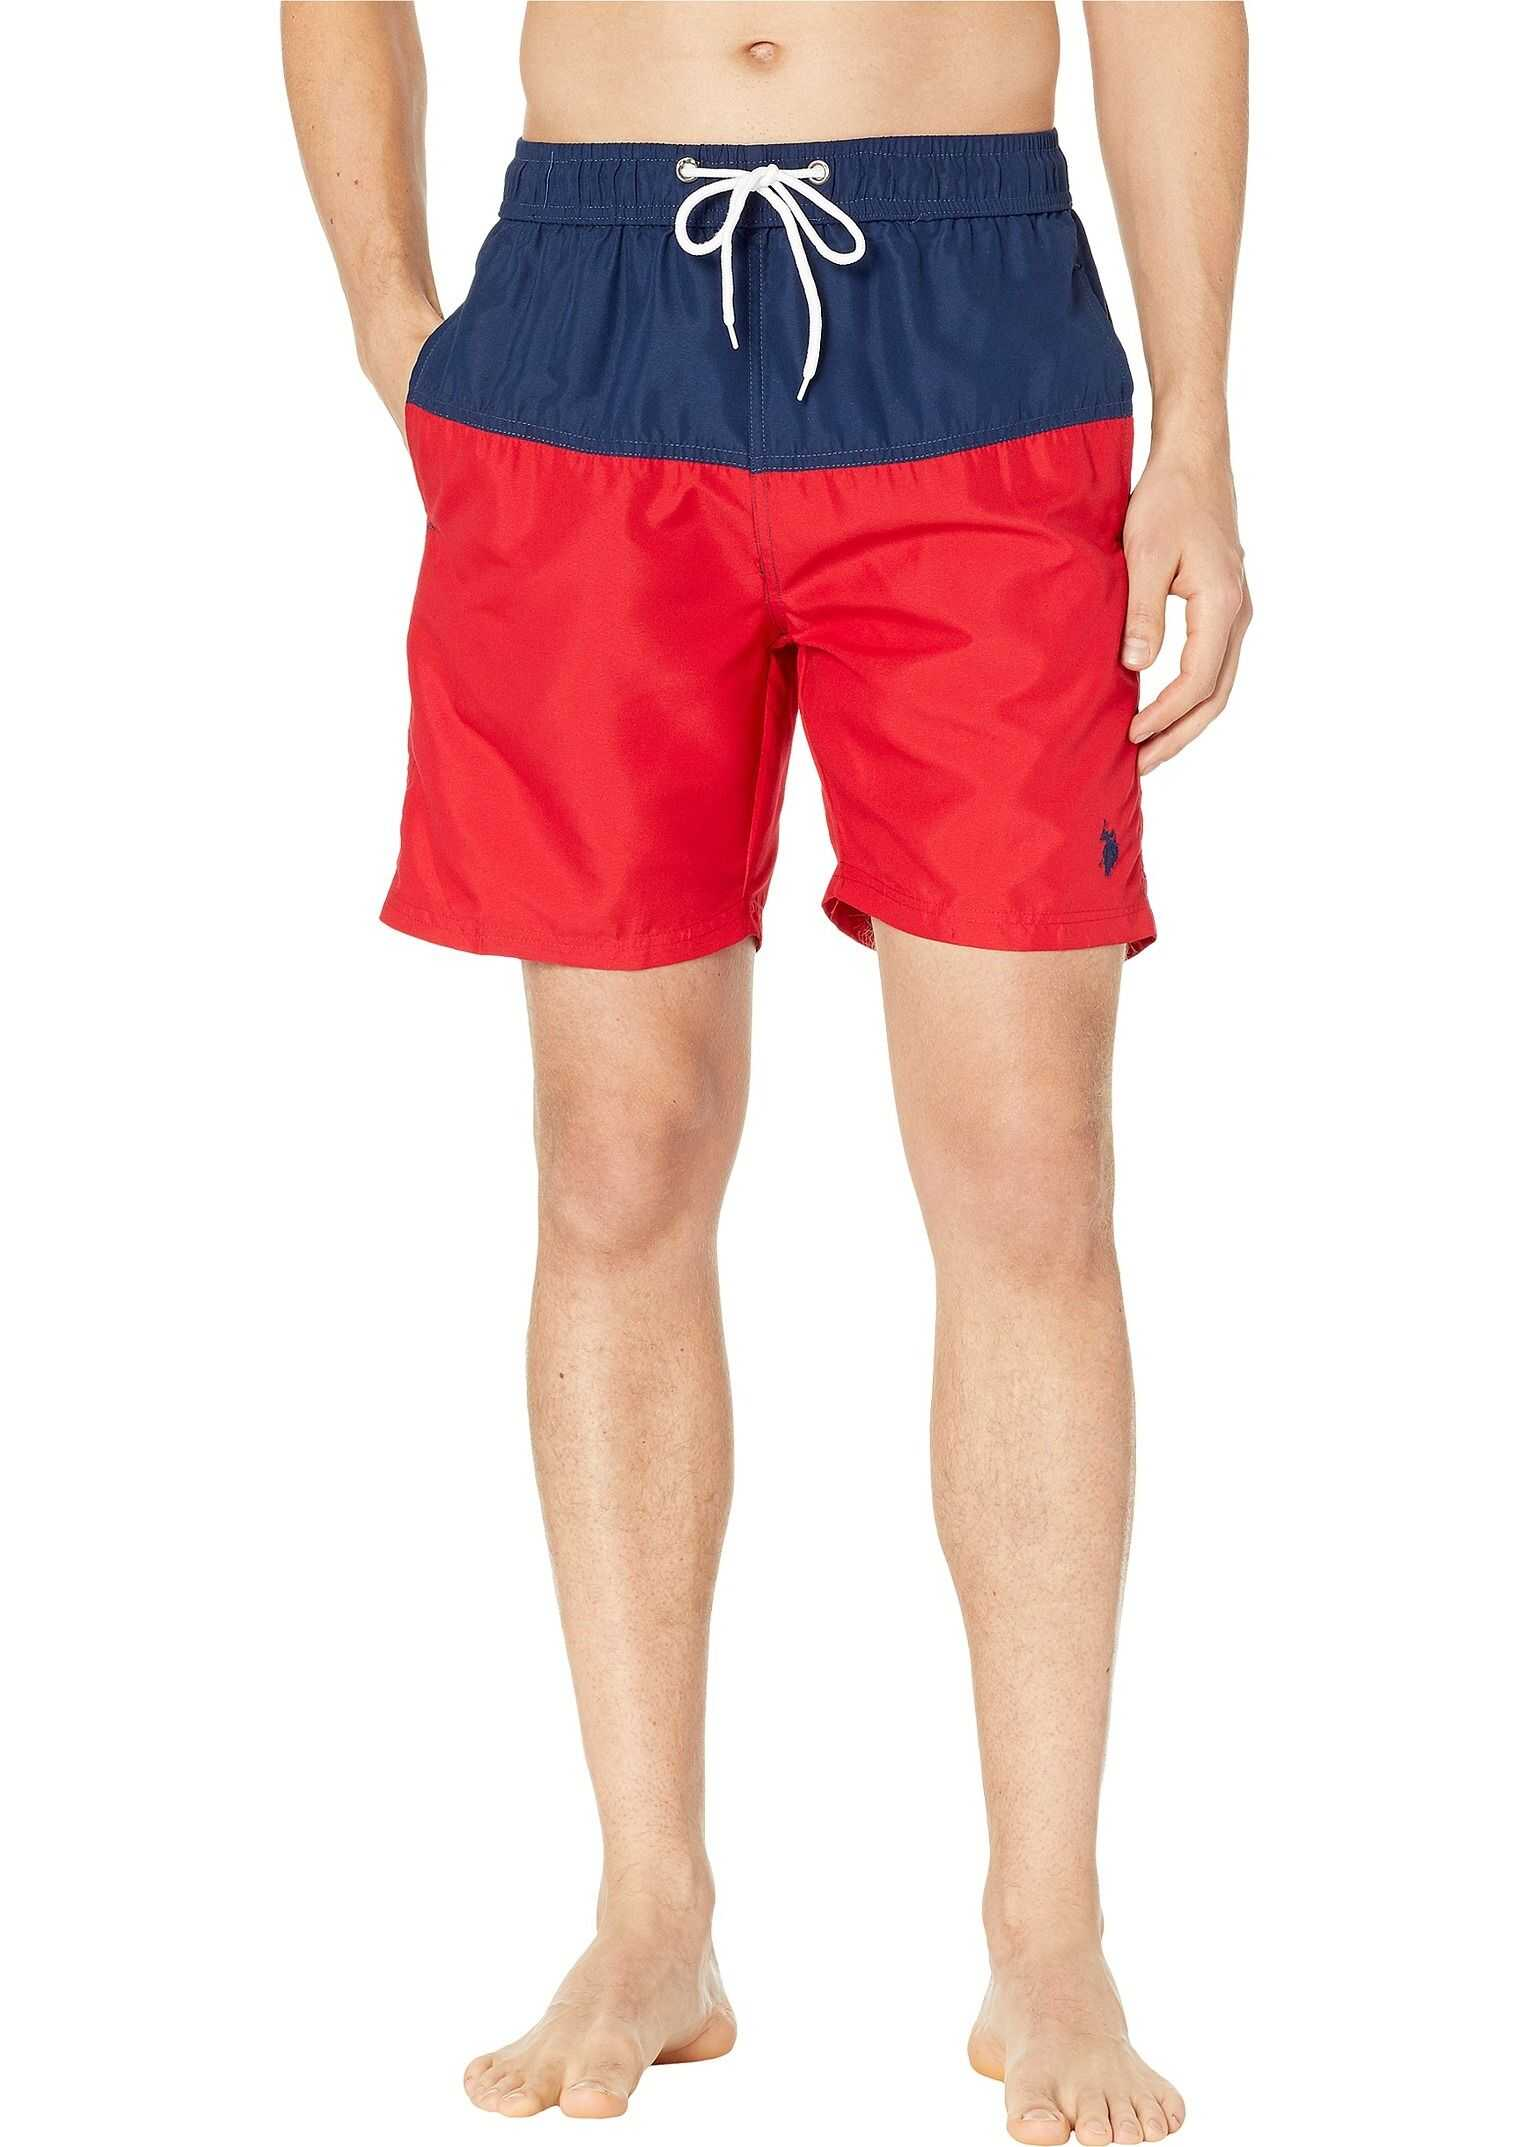 U.S. POLO ASSN. Color Block Swim Shorts Engine Red